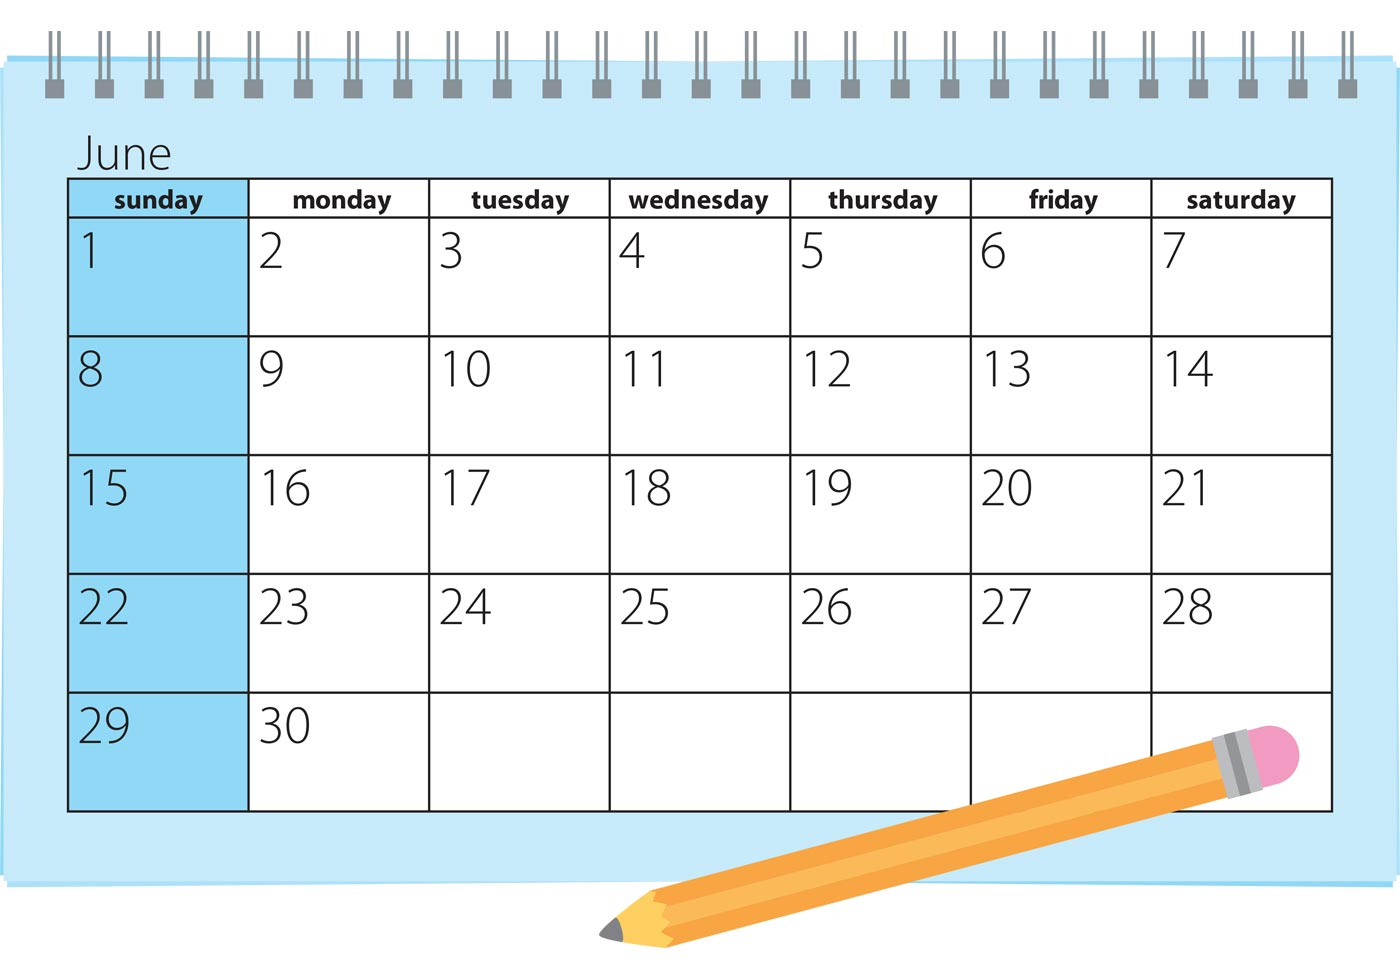 Weekly Calendar Vector : Calendar vector download free art stock graphics